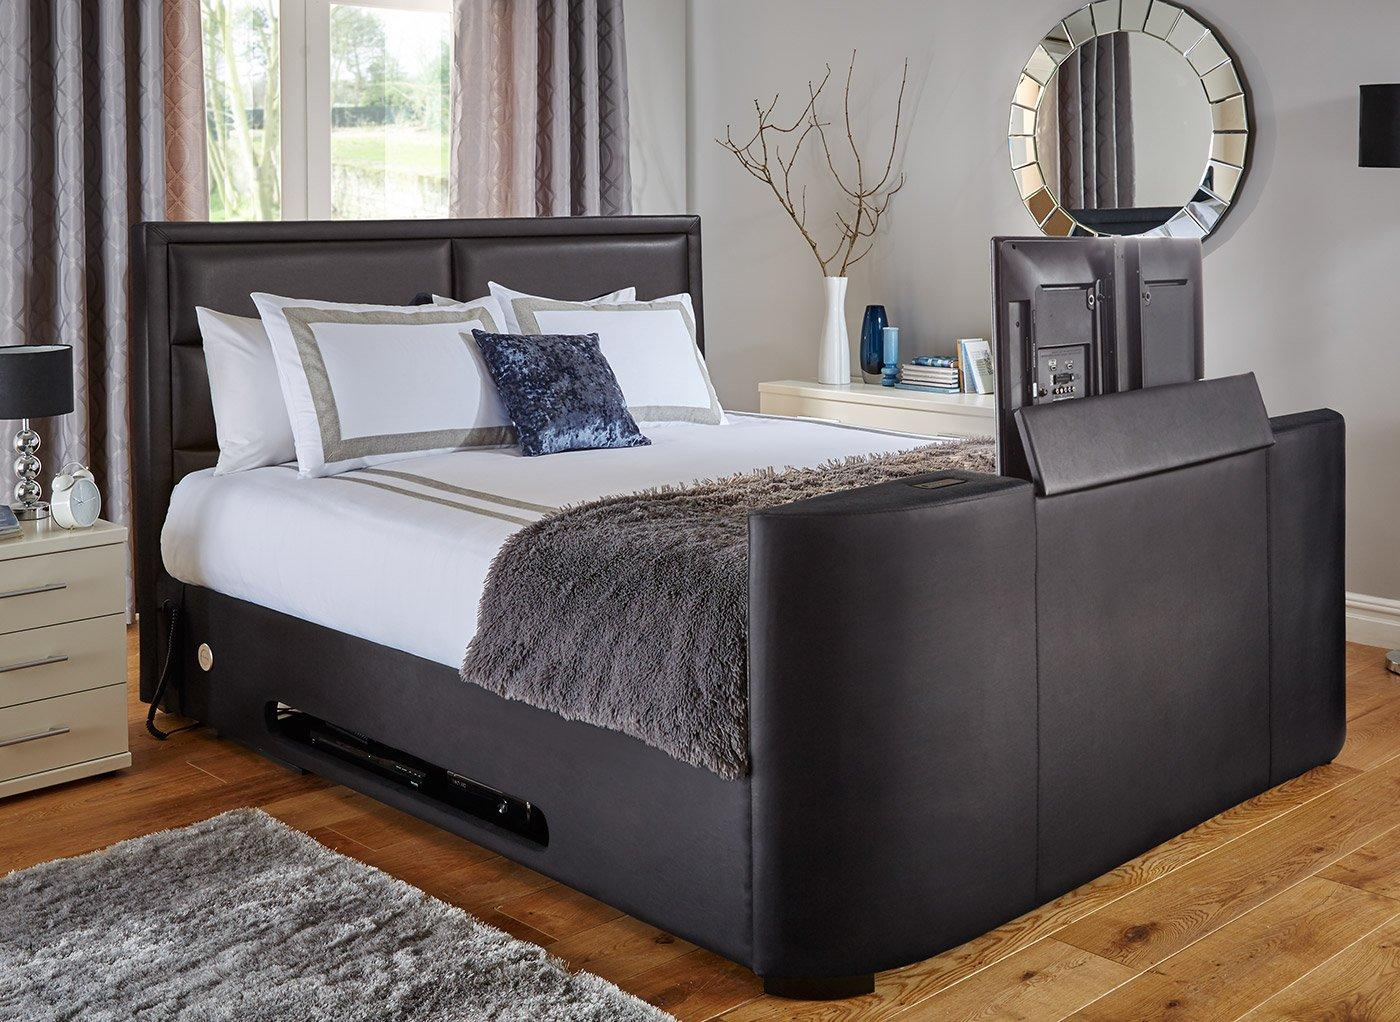 Tv In Bed : Tv bed stylish tv beds with led flat screens in all sizes dreams